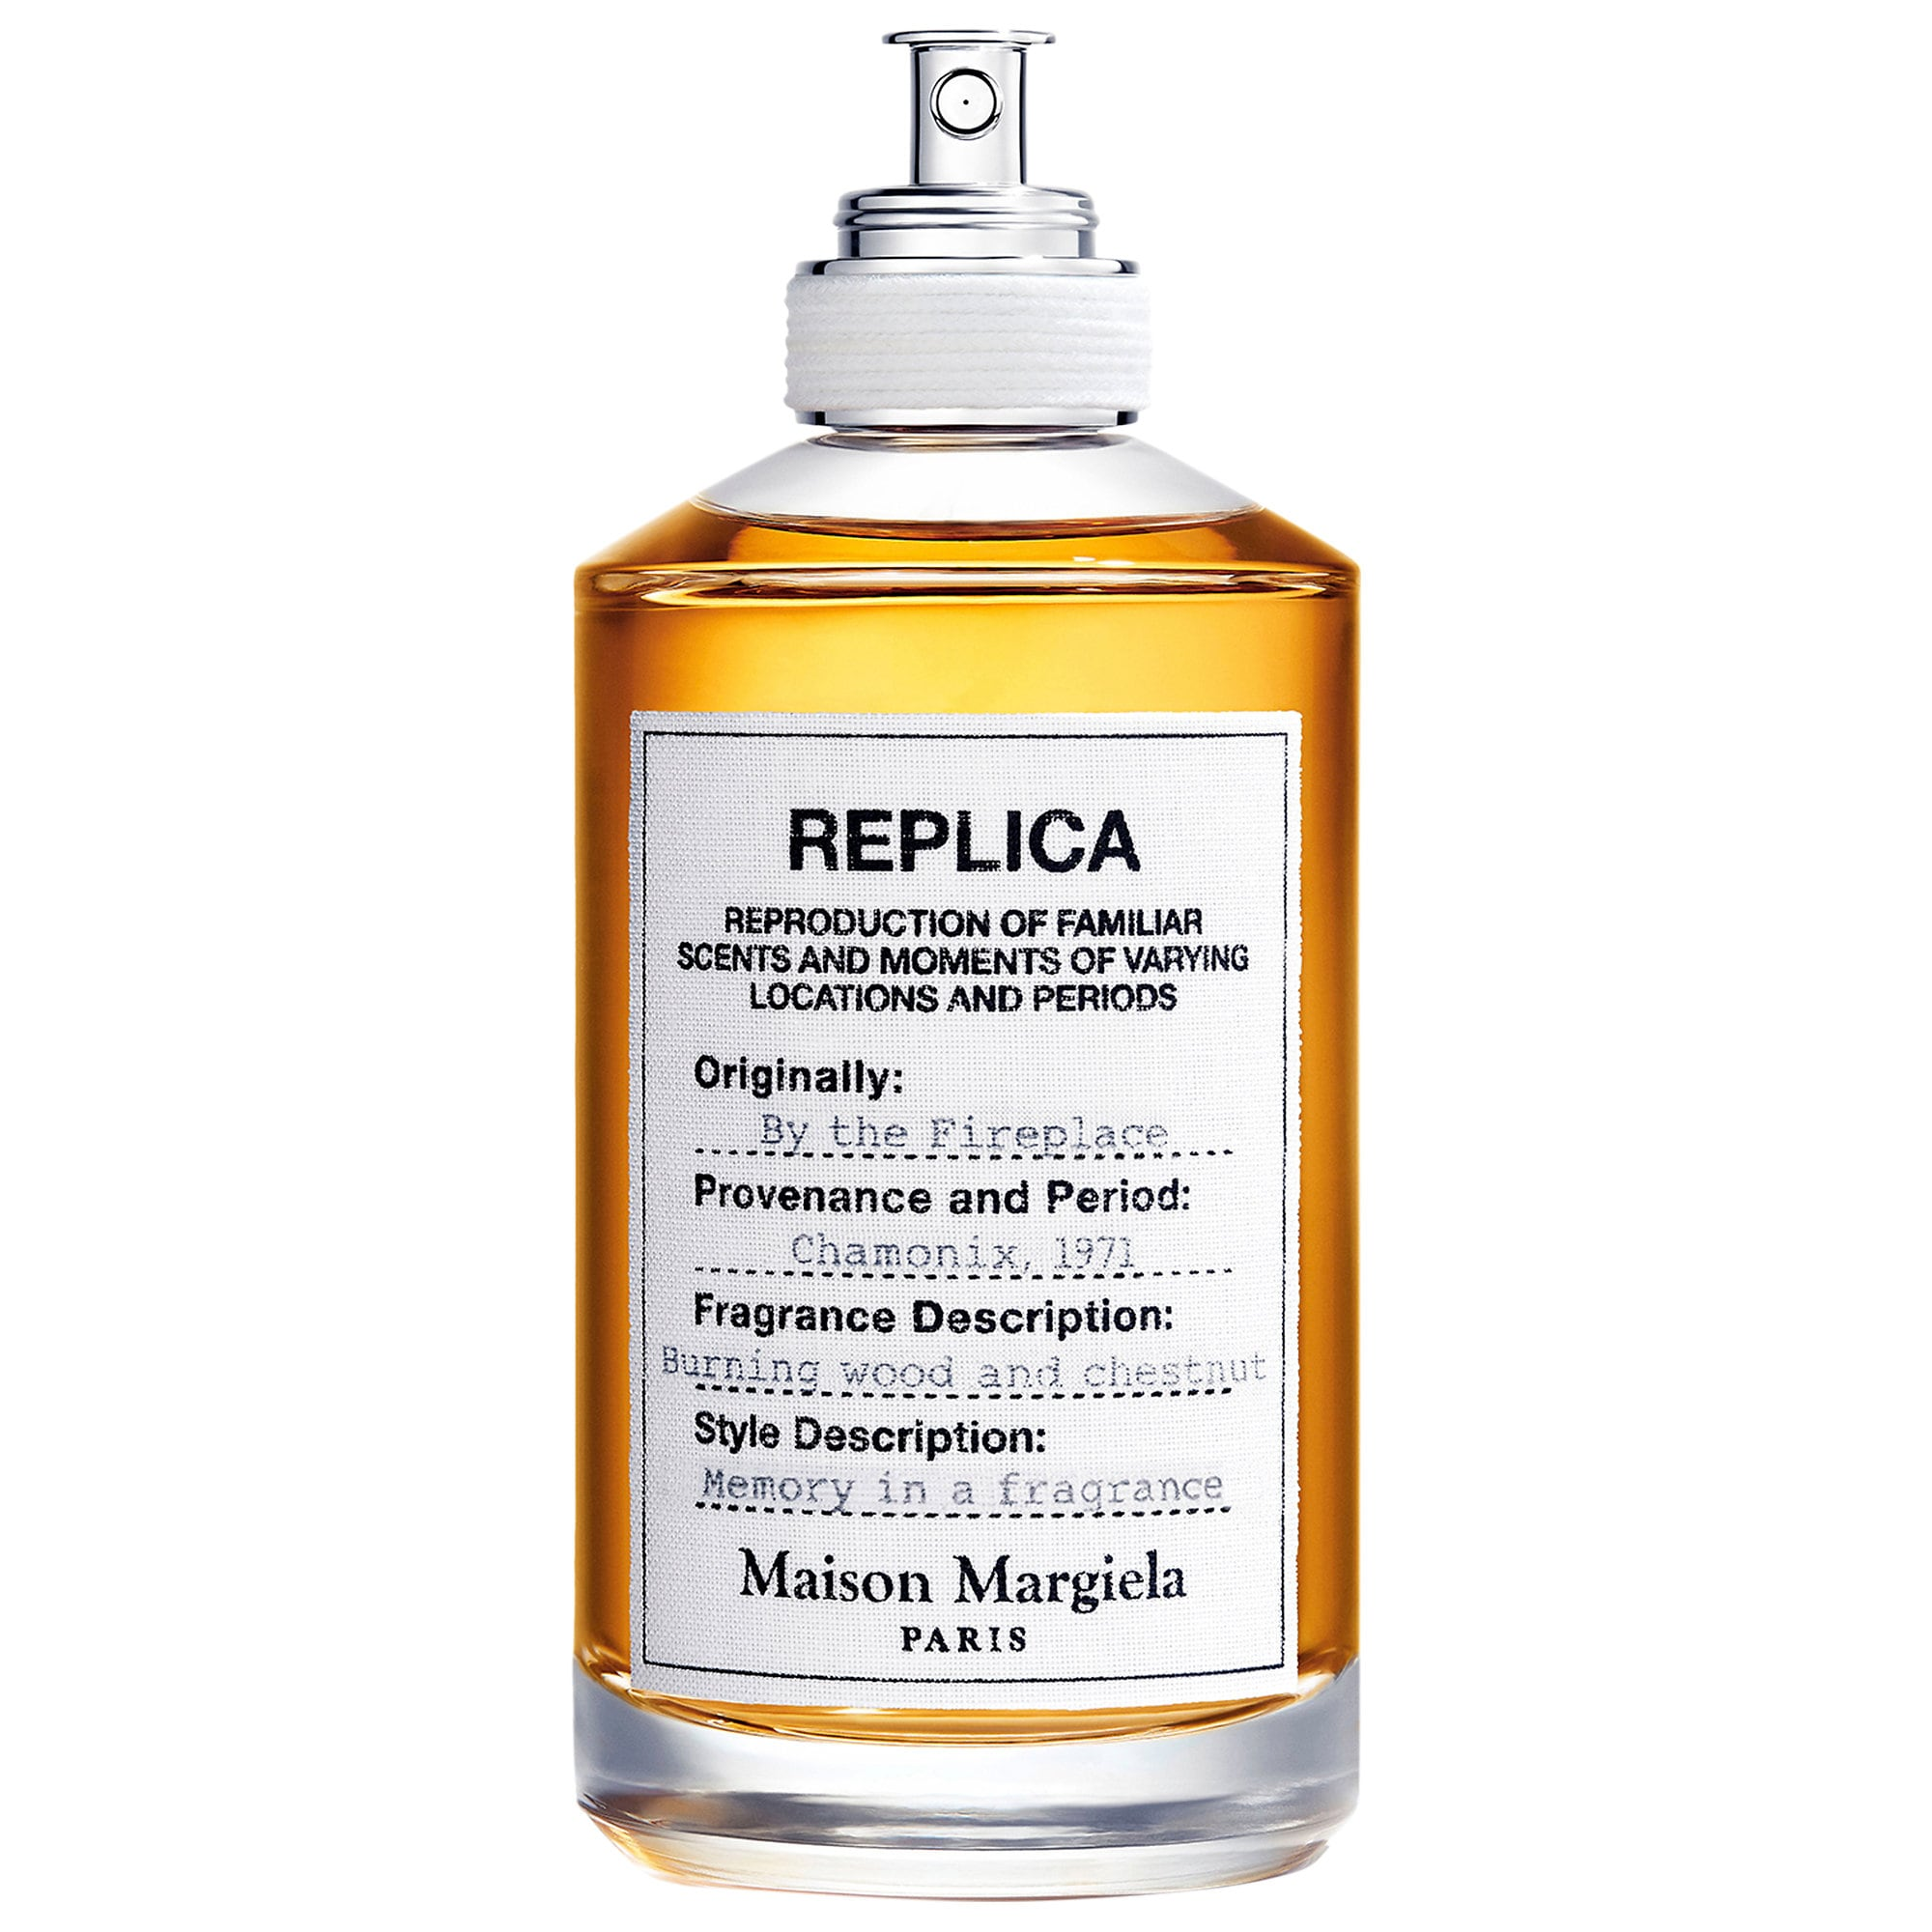 Maison Margiela - 'REPLICA' By the Fireplace